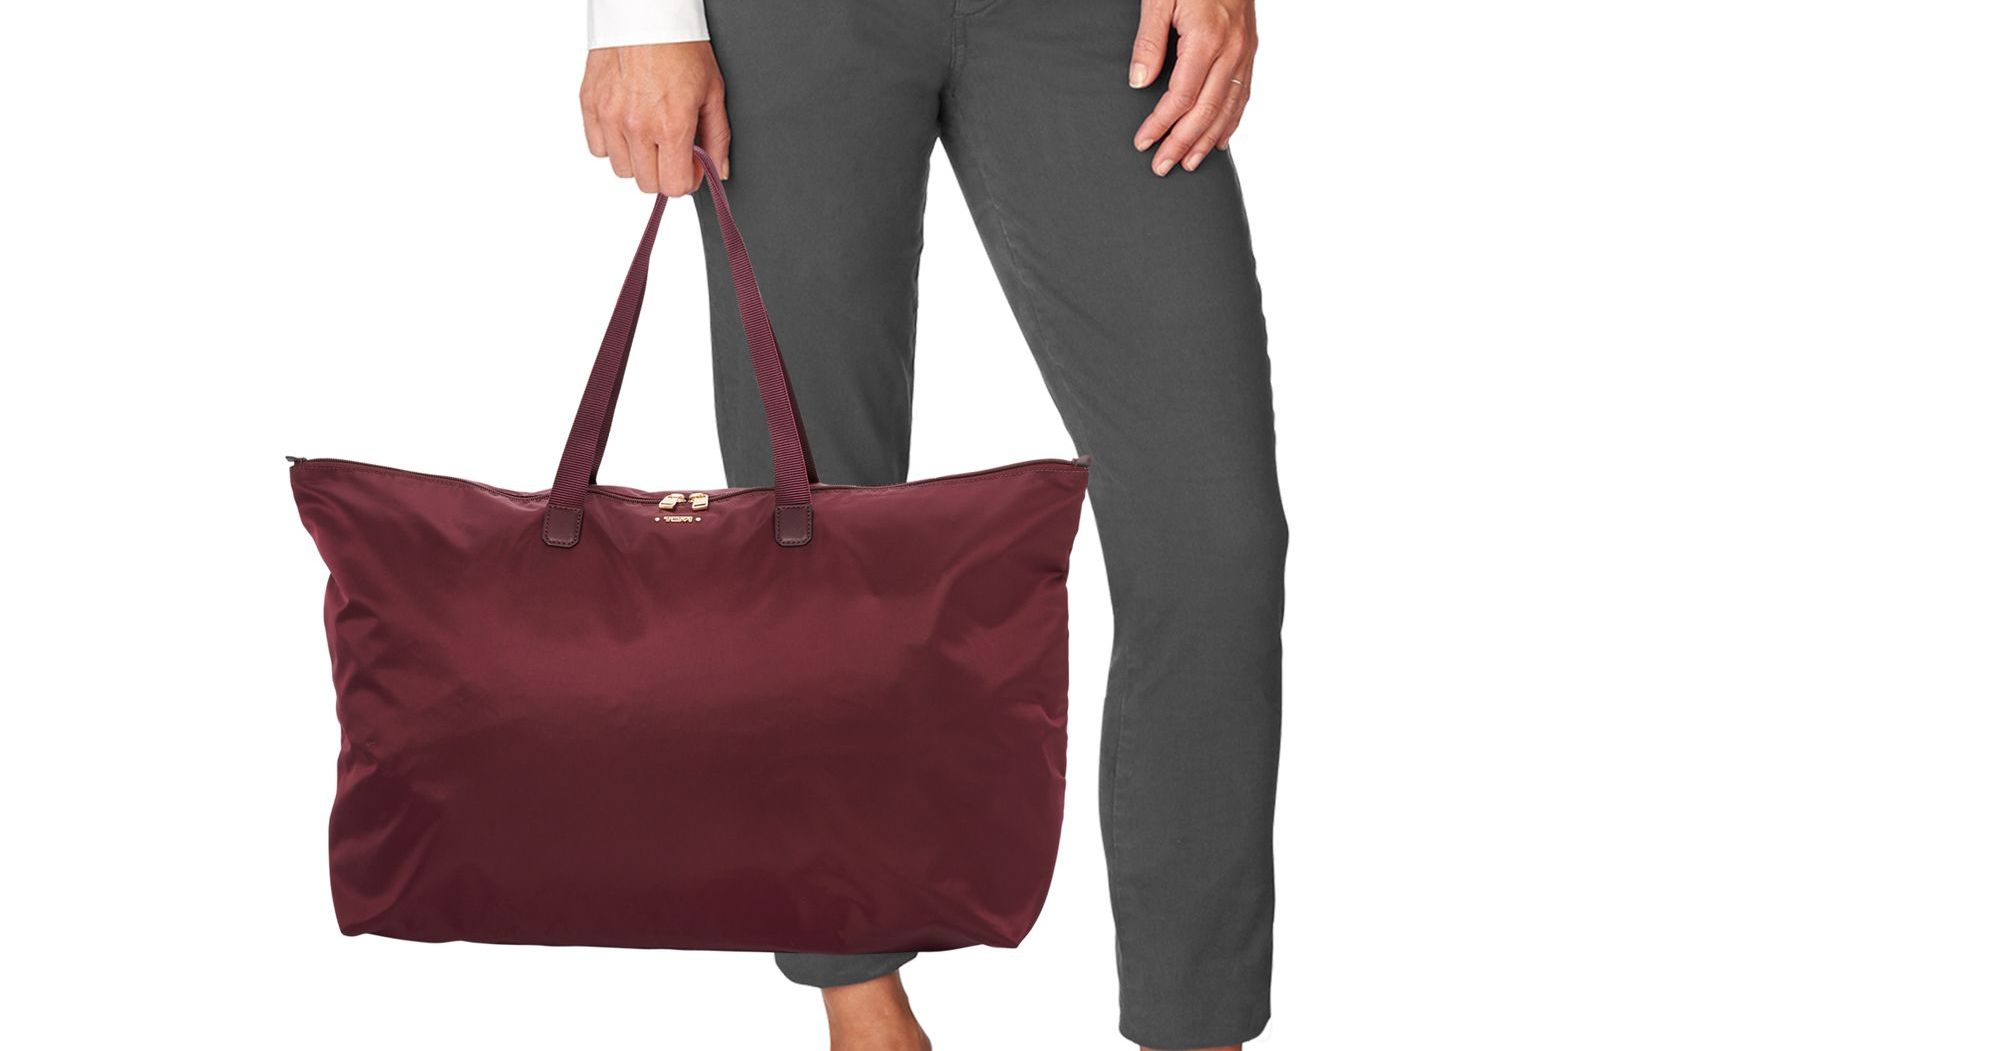 This Expandable Tote Is The Perfect Travel Bag For Fall Getaways